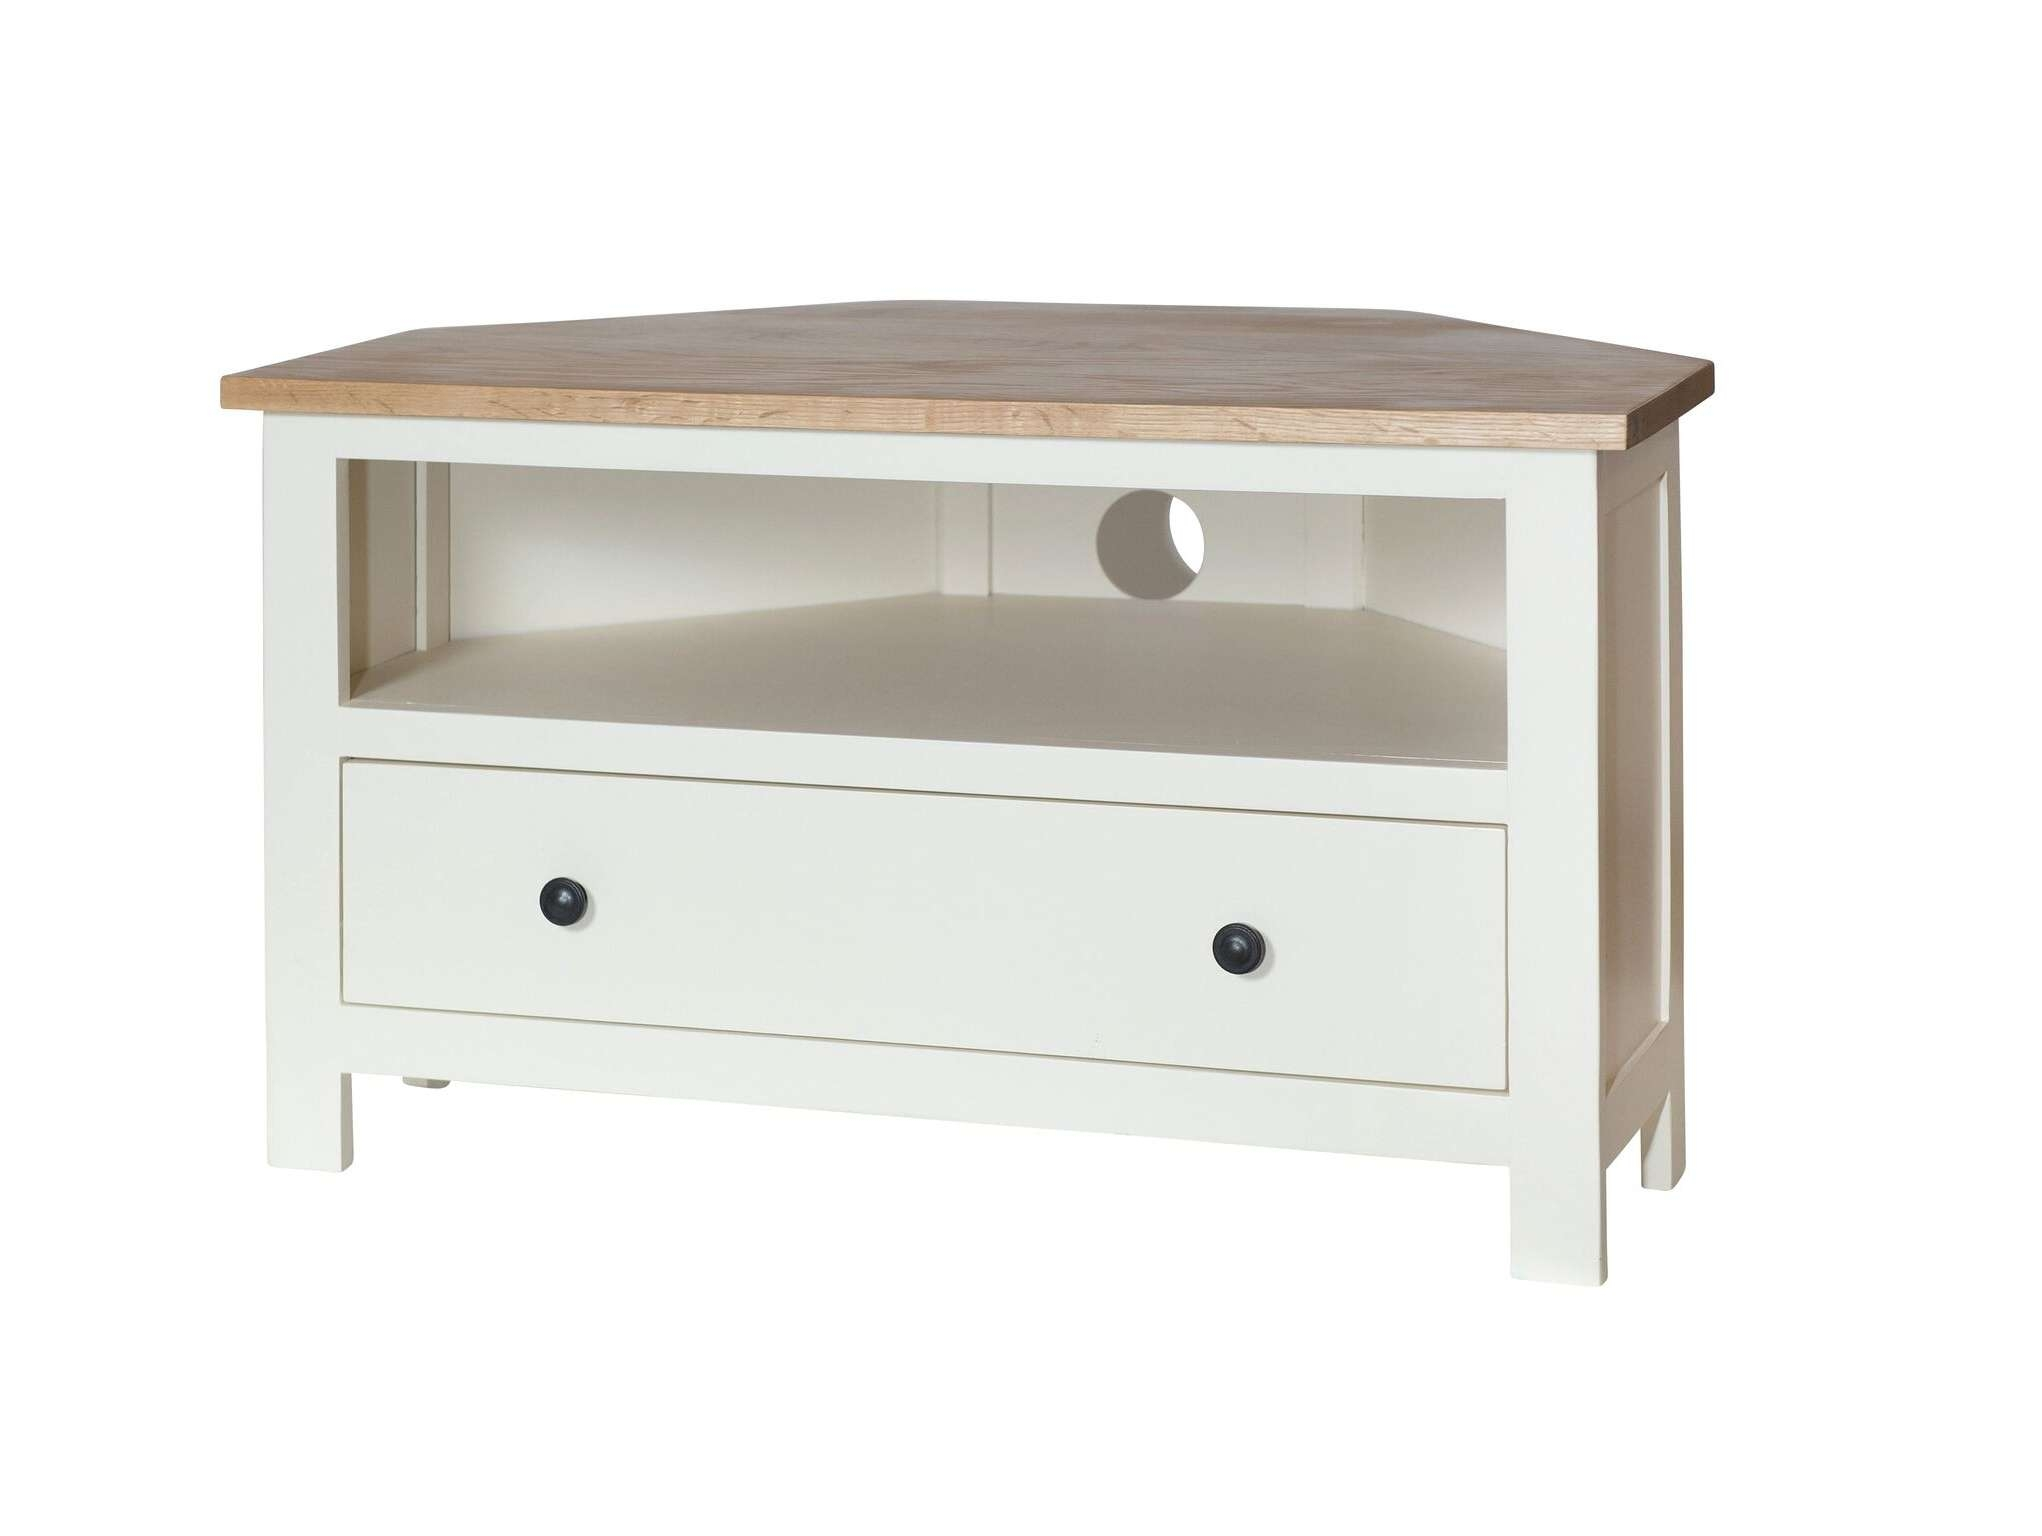 S0 – Cream Painted Oak Top Corner Tv Unit – Country Furniture Barn Inside Painted Corner Tv Cabinets (View 10 of 20)